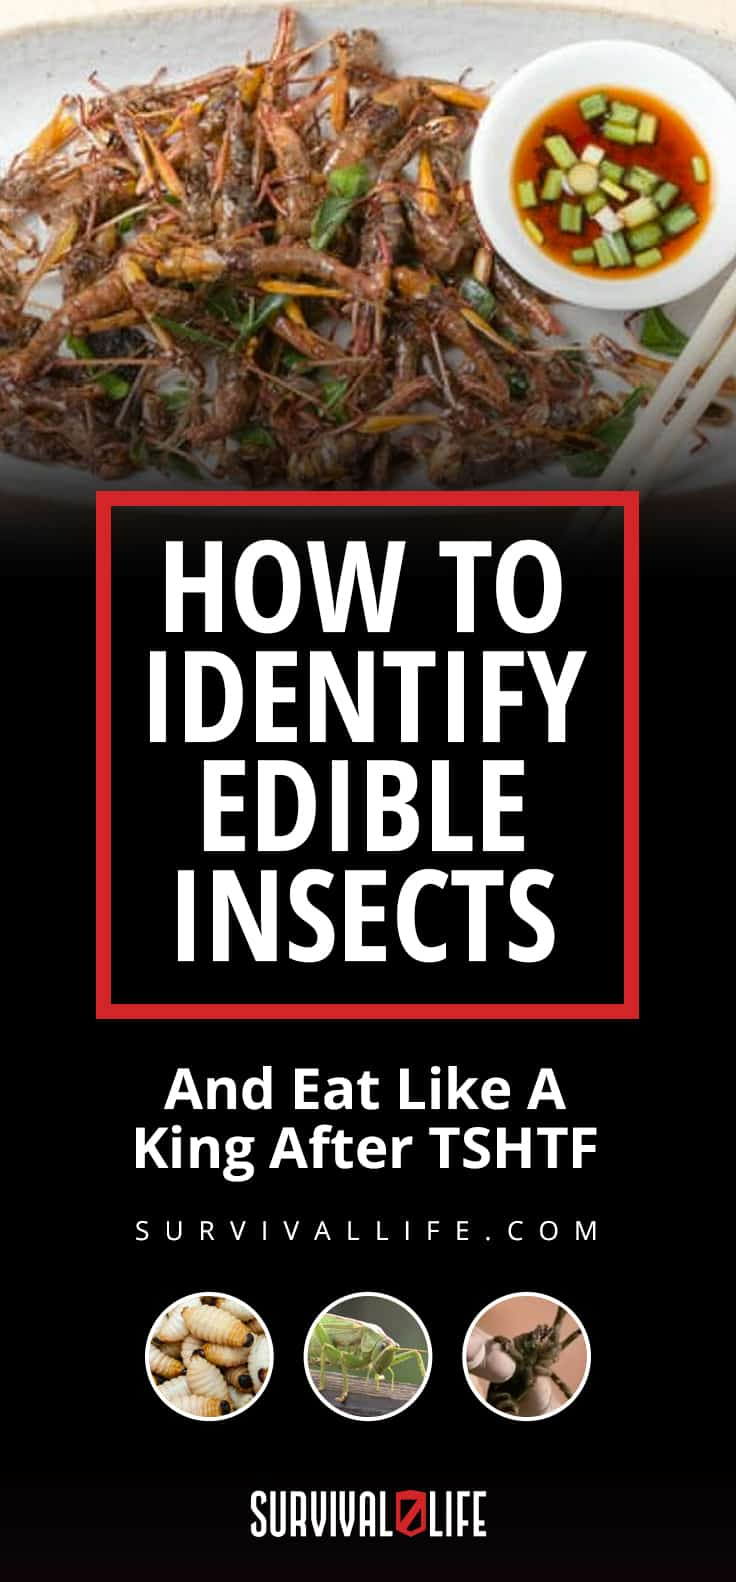 Edible Insects | How To Identify Edible Insects And Eat Like A King After TSHTF